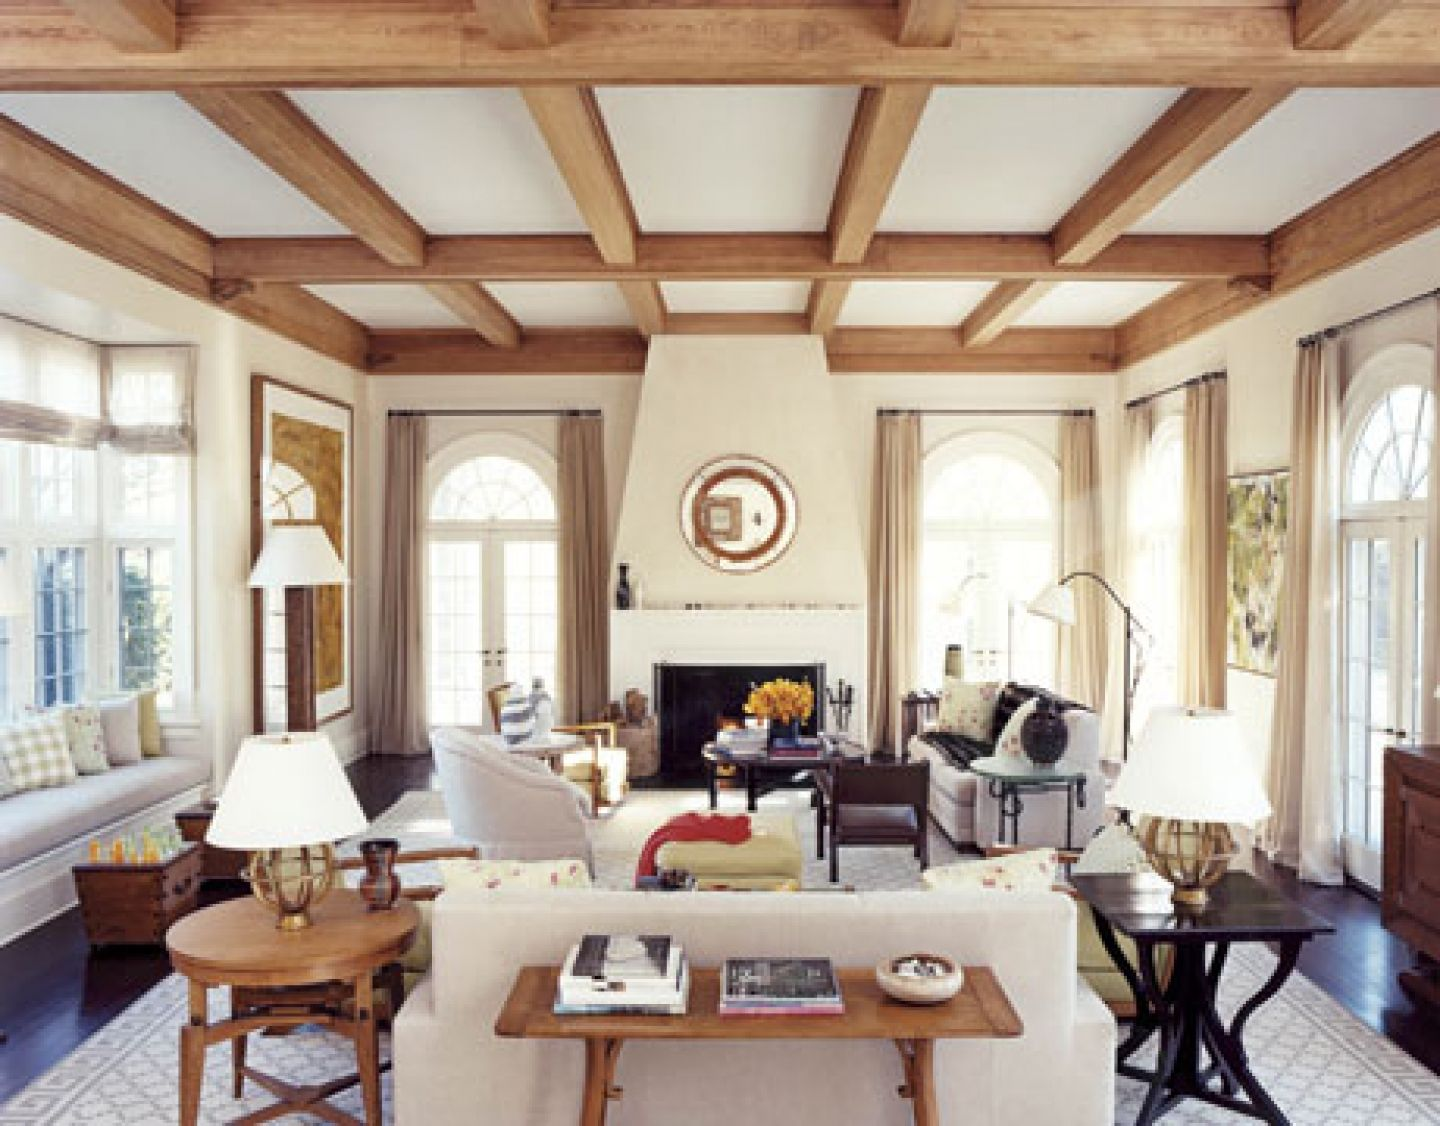 Luxury Home Beams Interior | White Living Room With Wood Ceiling Beams